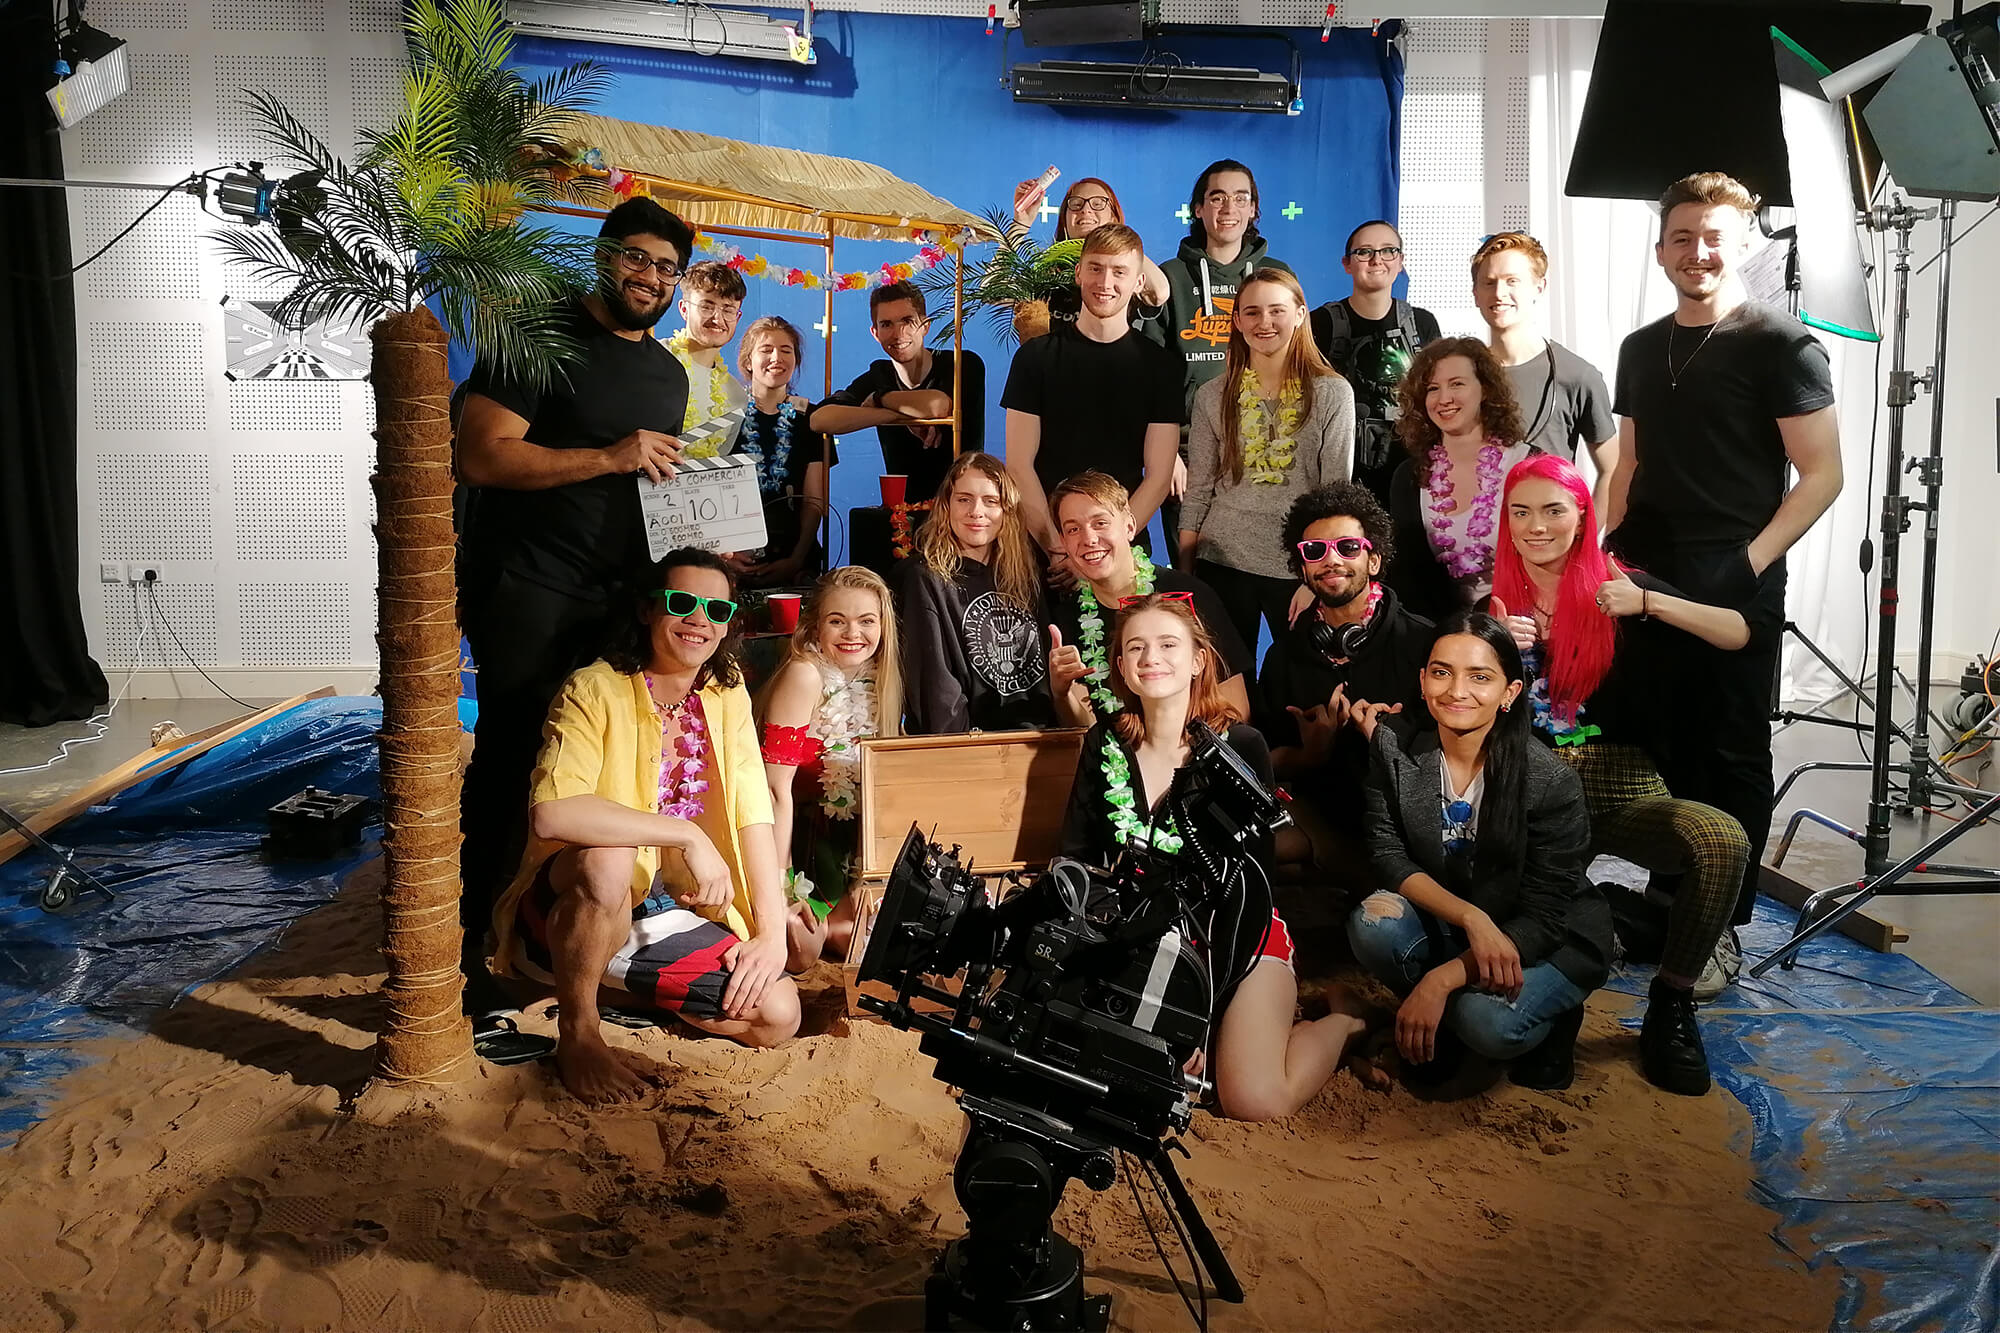 A group of actors and film crew pose for a group photo in a studio location of sand and palm trees